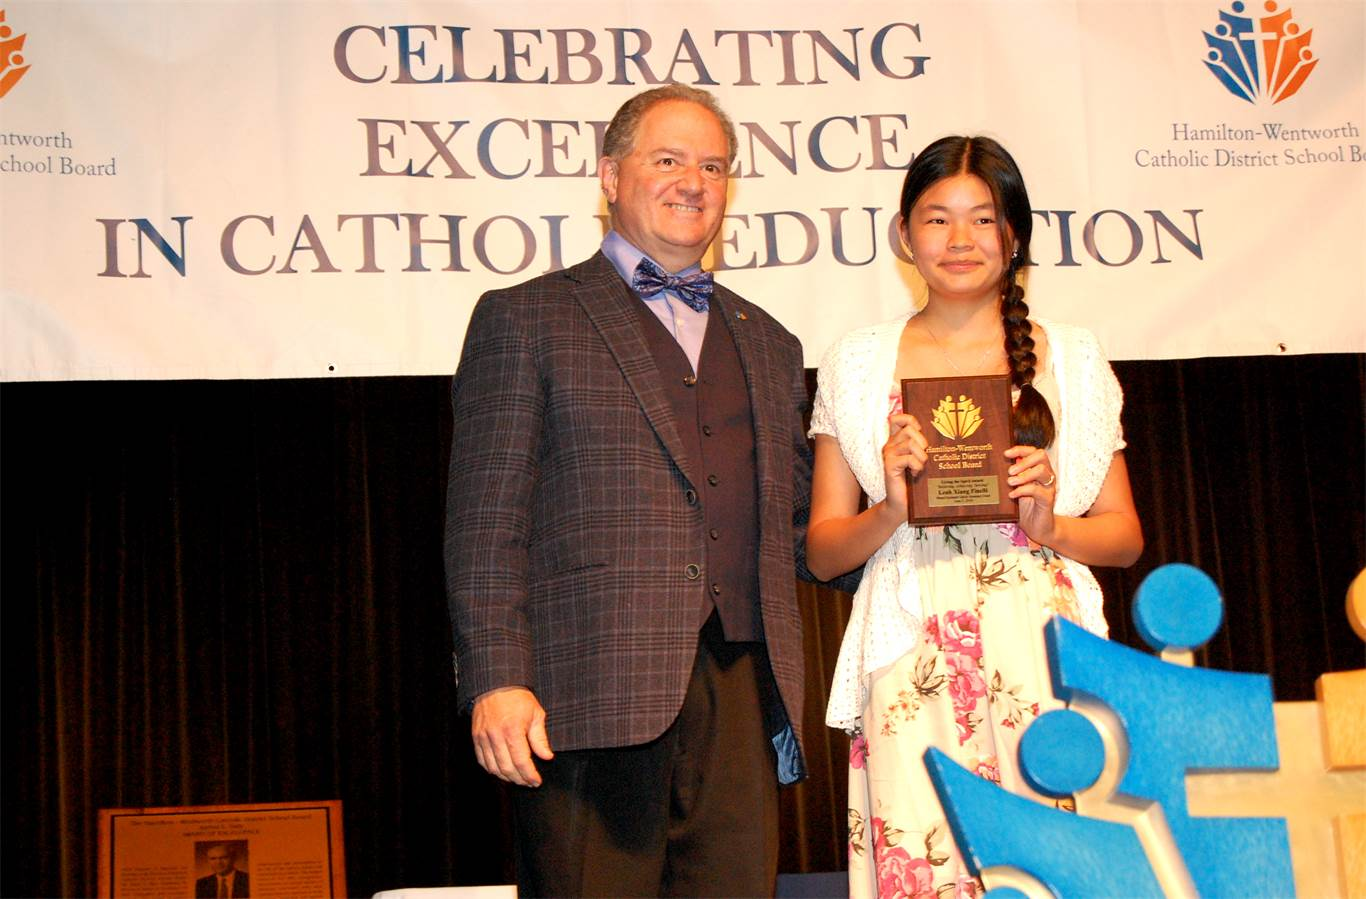 Grade 8 Blessed Sacrament student Leah Xiang Finelli is presented with a Living the Spirit Award by Trustee Joseph Baiardo. The Award recognizes exemplary, well-rounded students.